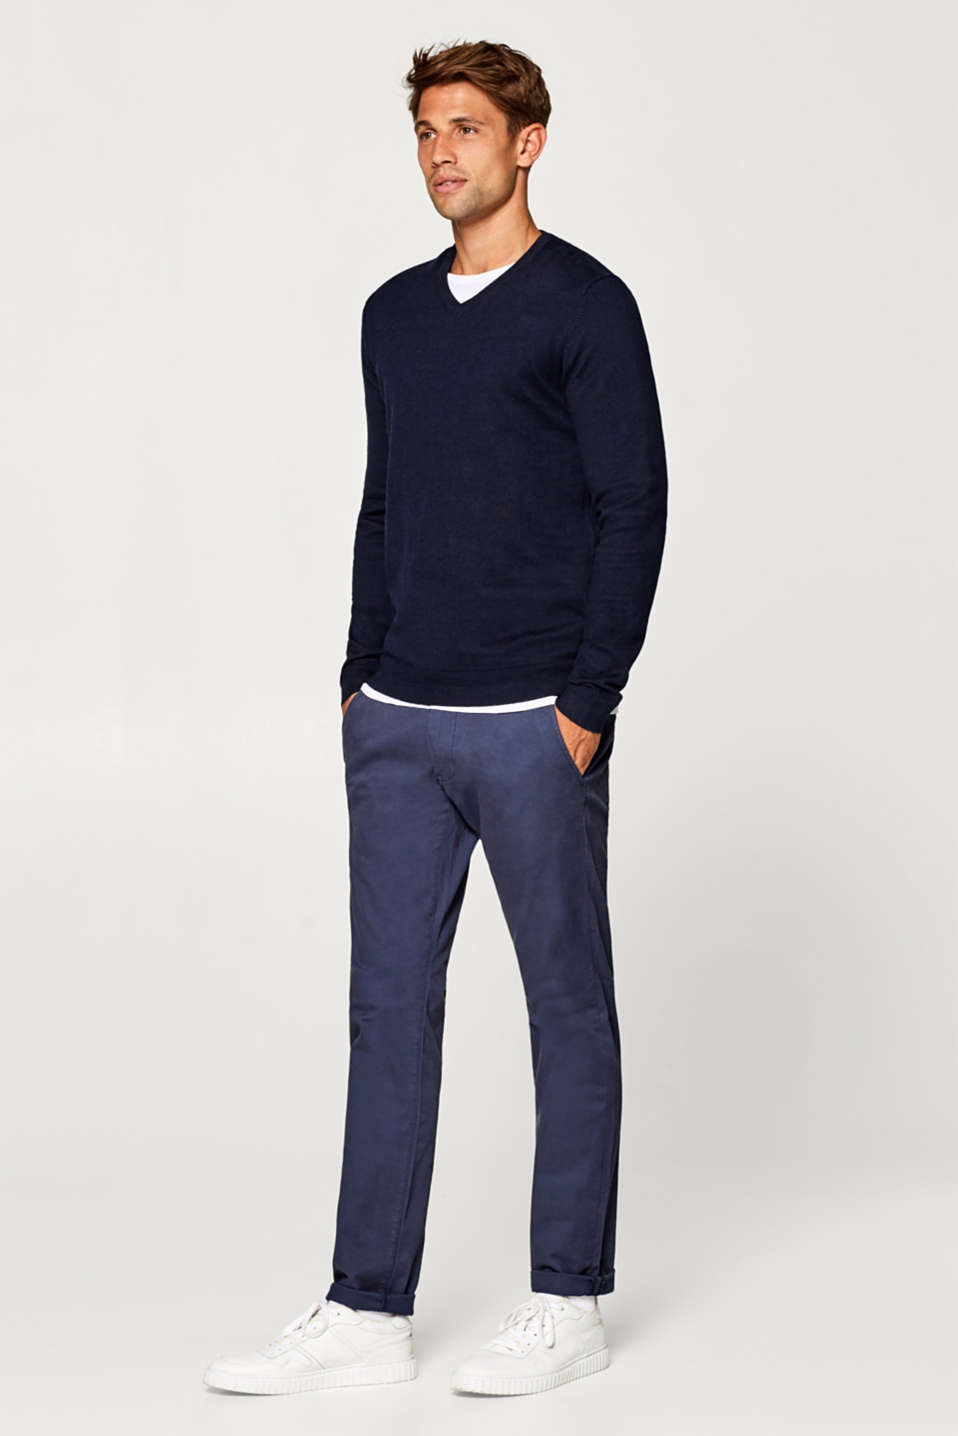 Cotton jumper containing cashmere